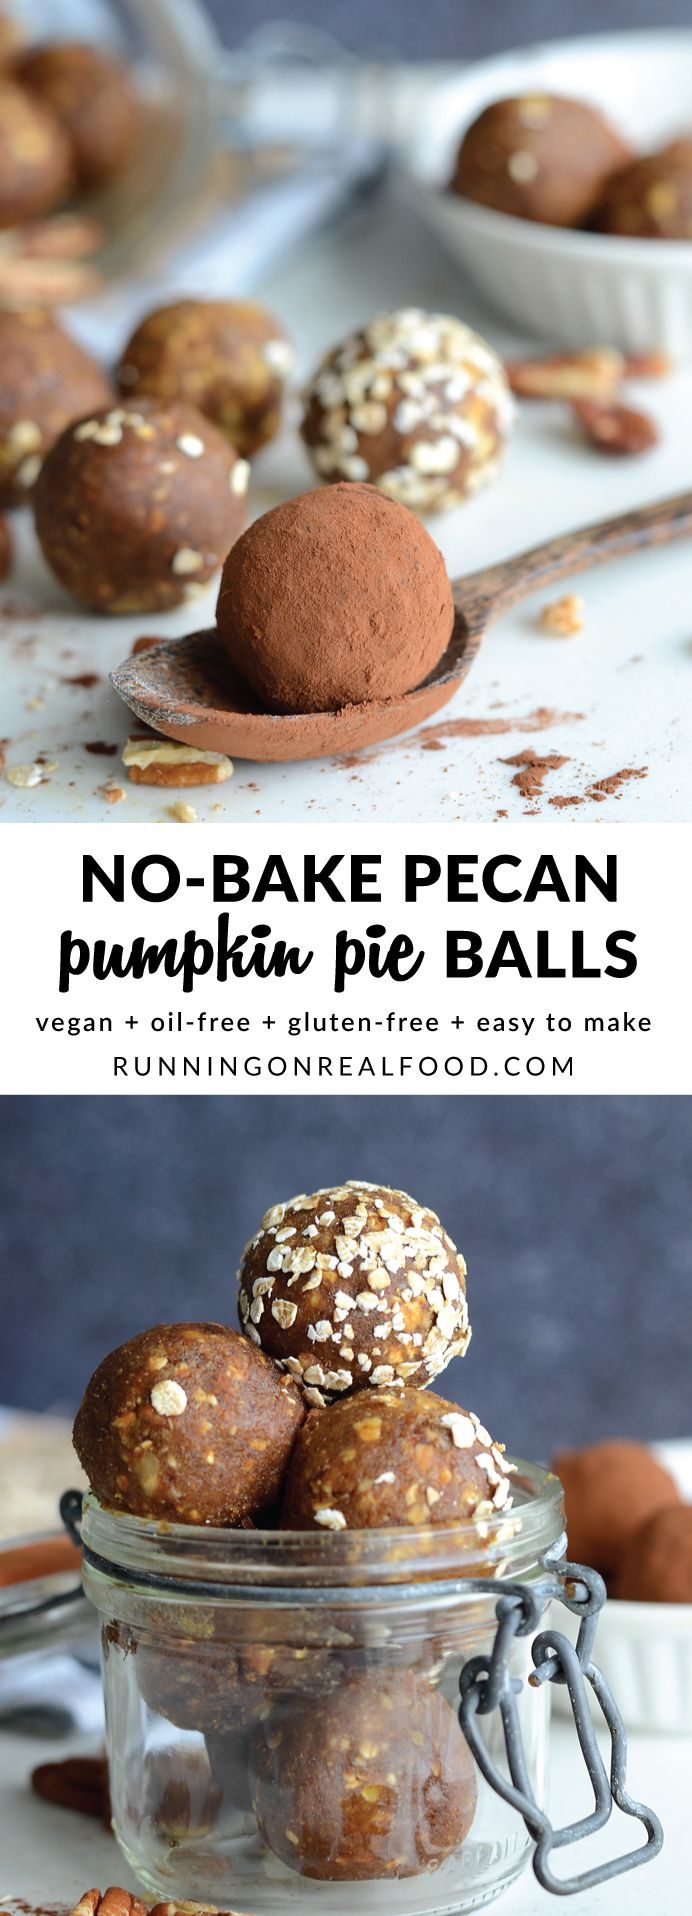 These Raw Pecan Pumpkin Pie Balls are ready in minutes with just a few simple ingredients. Gluten-free, vegan, oil-free, no baking and so easy to make!  Recipe: http://runningonrealfood.com/pecan-pumpkin-pie-balls/